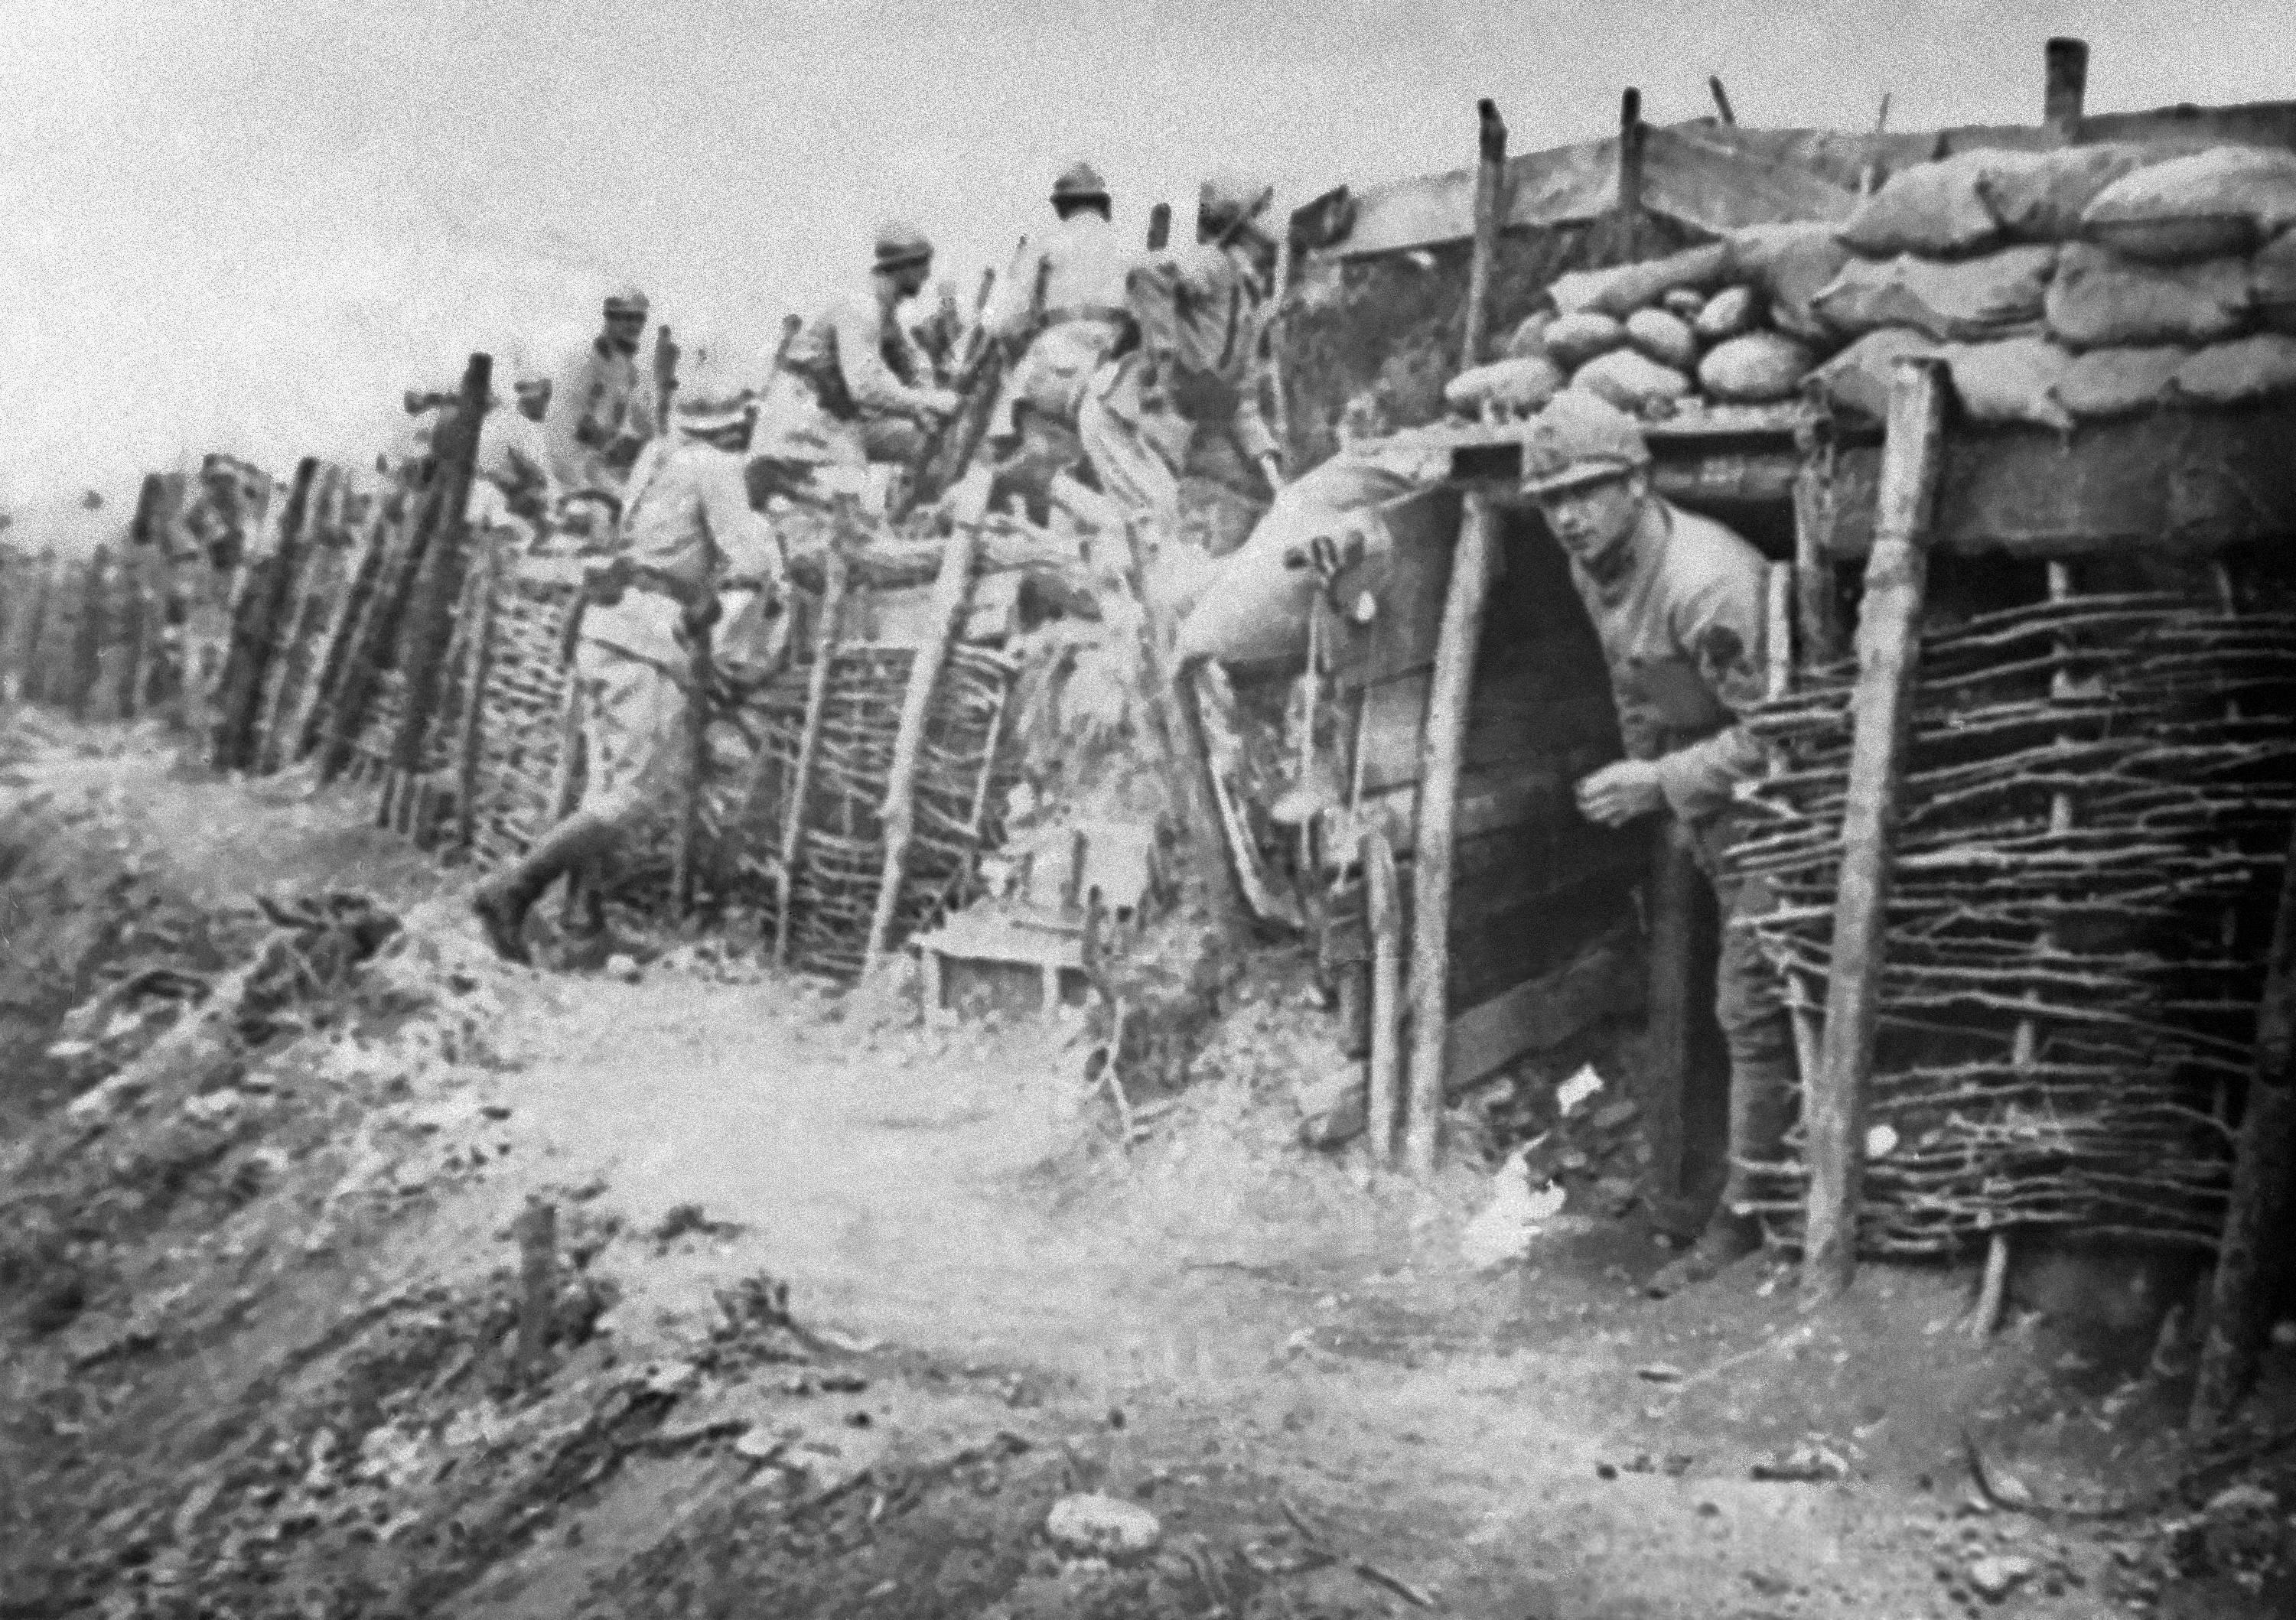 90 OF 100: In this 1918 file photo, Italian army soldiers look out of their dugouts at the Battle of the Piave River, Italy, during World War I. The Battle of the Piave River was fought between June 15-23, 1918.